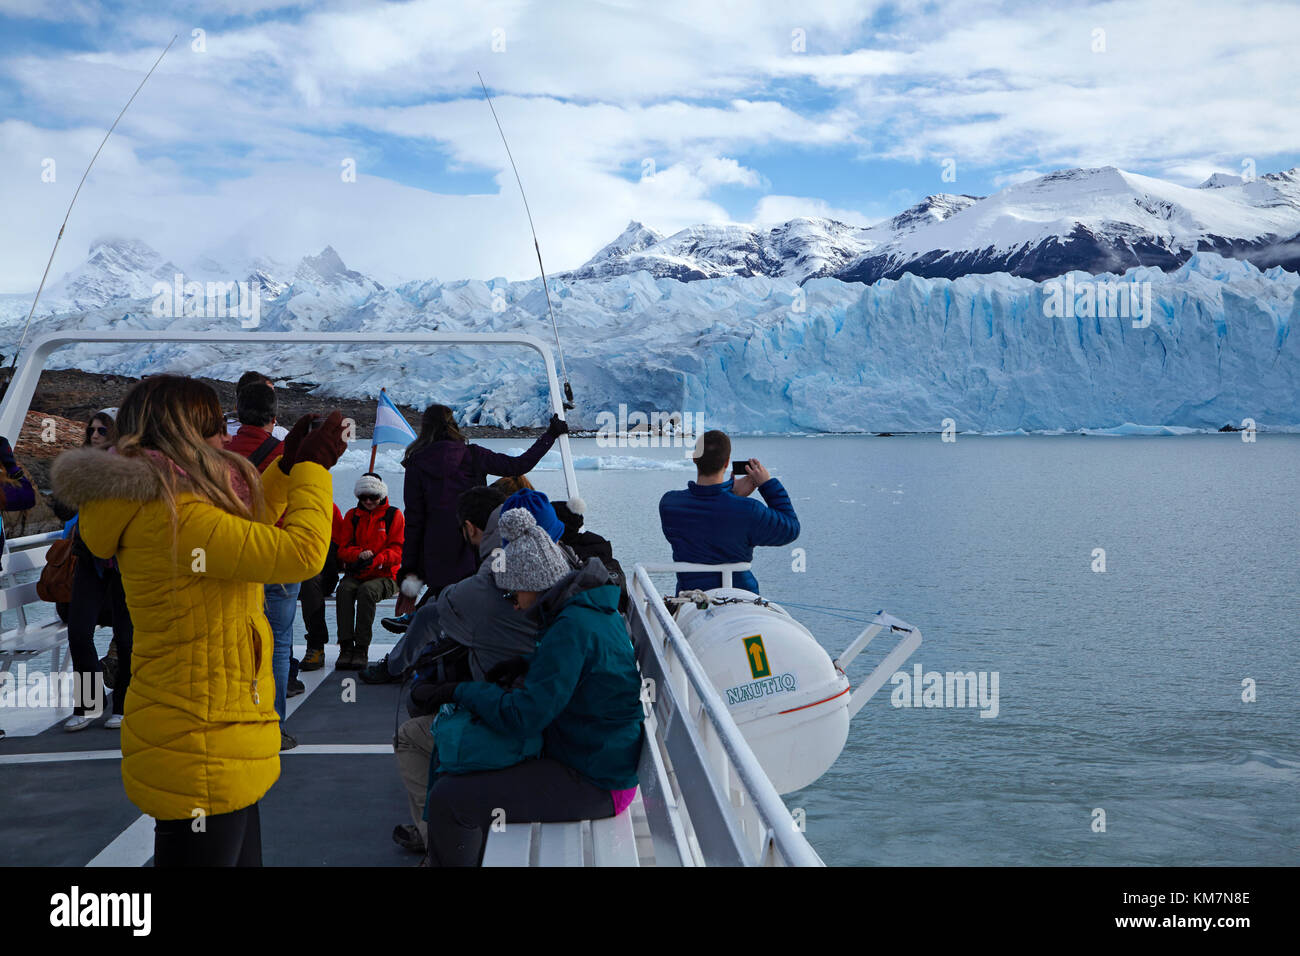 Tourists on boat and Perito Moreno Glacier, Parque Nacional Los Glaciares (World Heritage Area), Patagonia, Argentina, - Stock Image